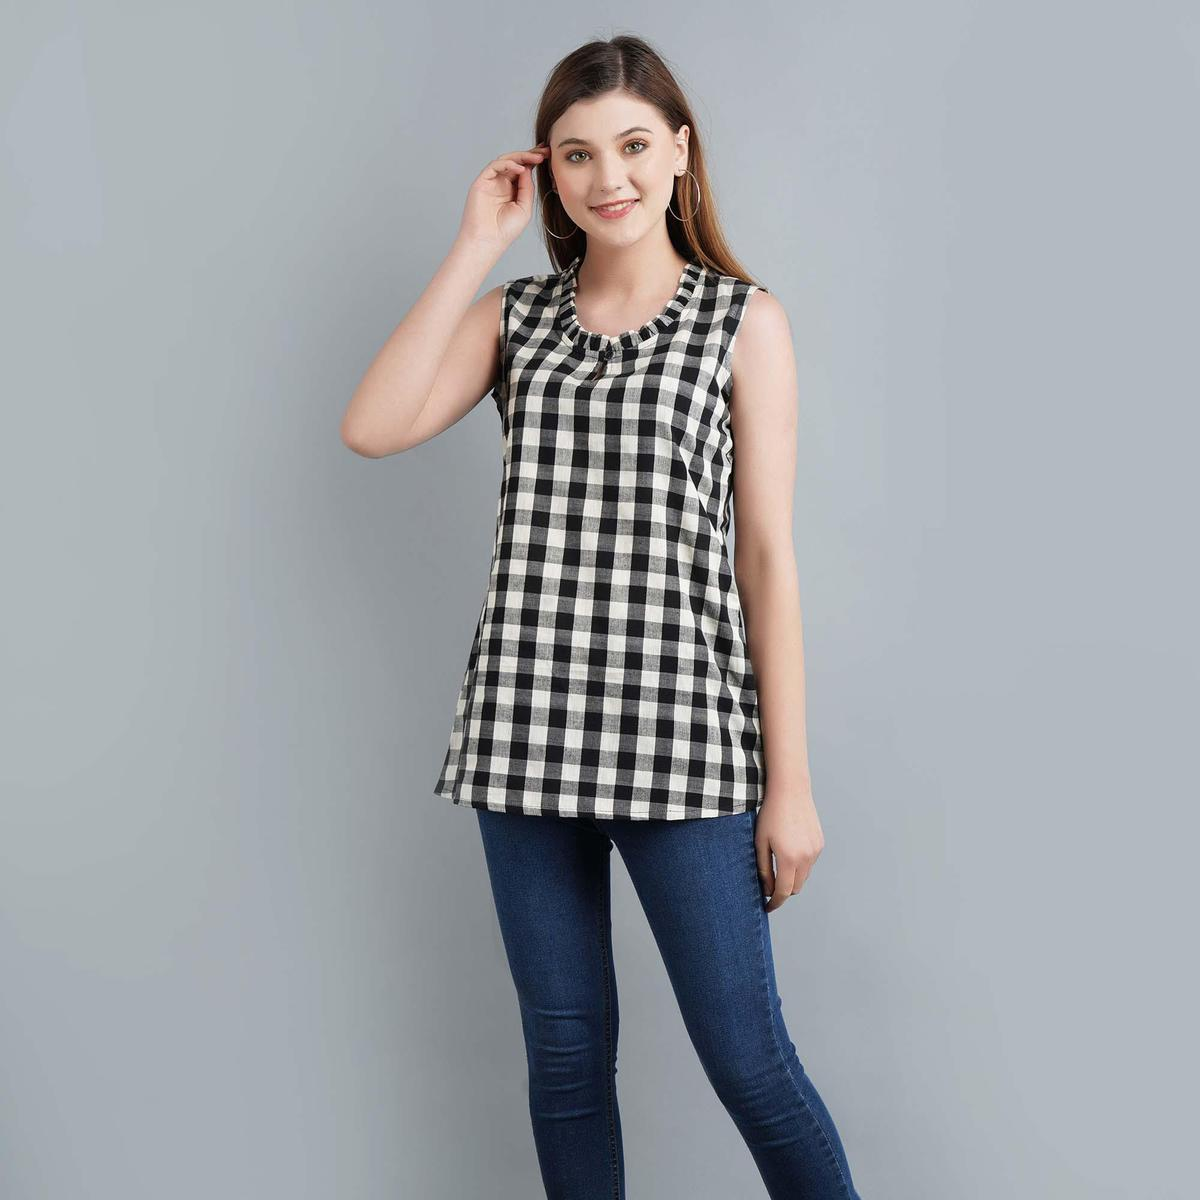 Darzaania - Black-White Colored Casual Wear Checked Ikat Handloom Cotton Top